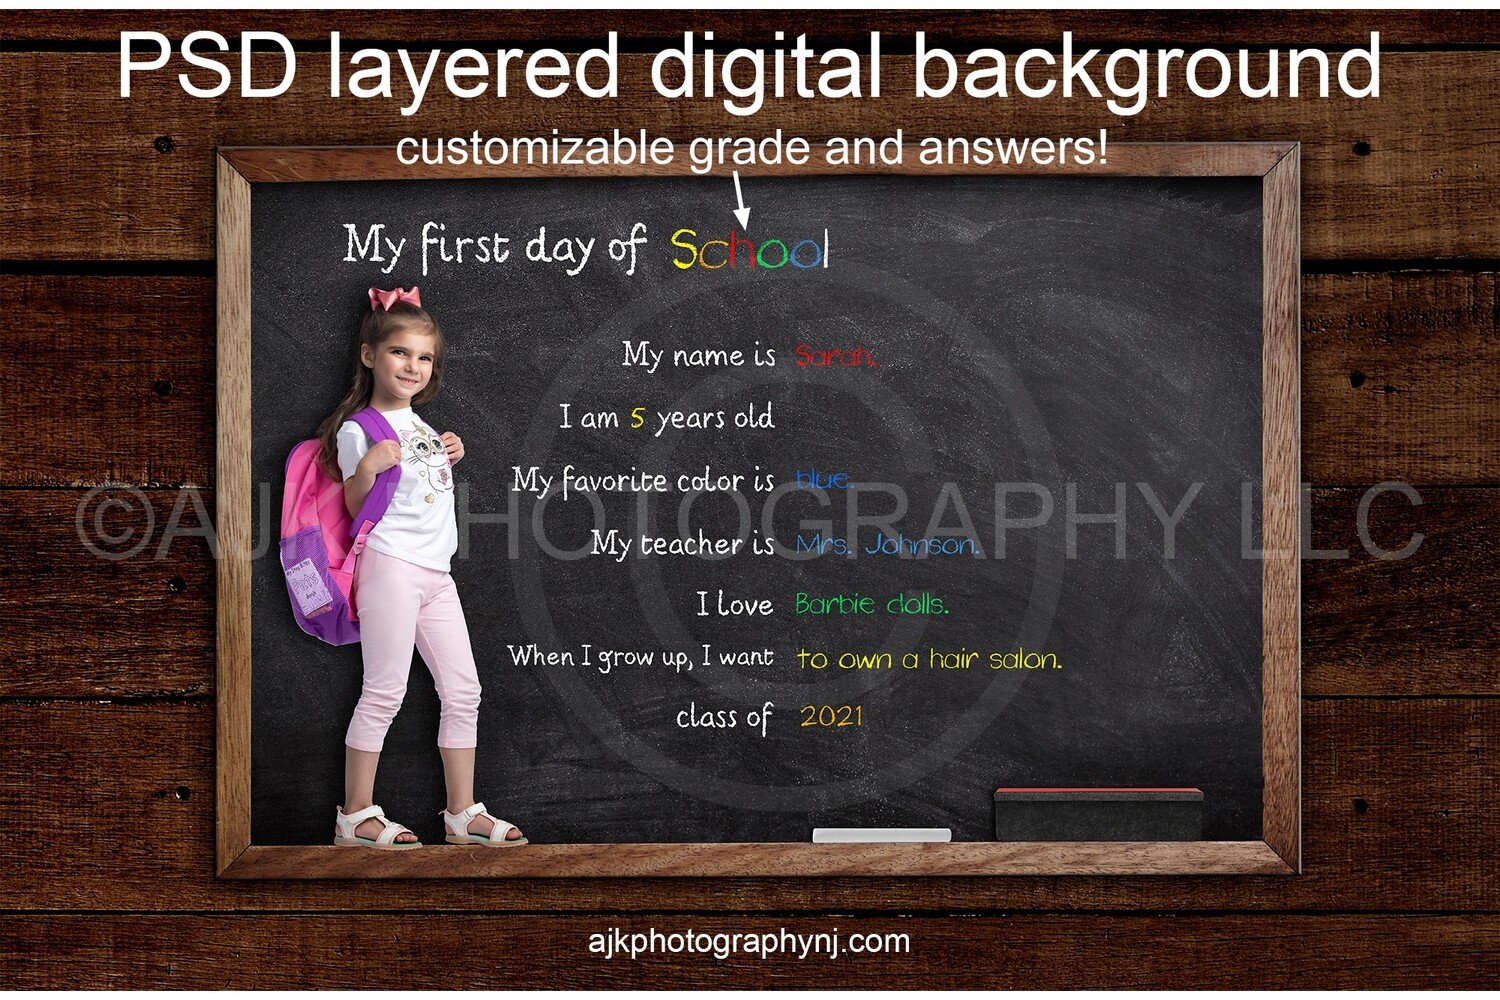 First day of school customizable PSD digital background, back to school backdrop